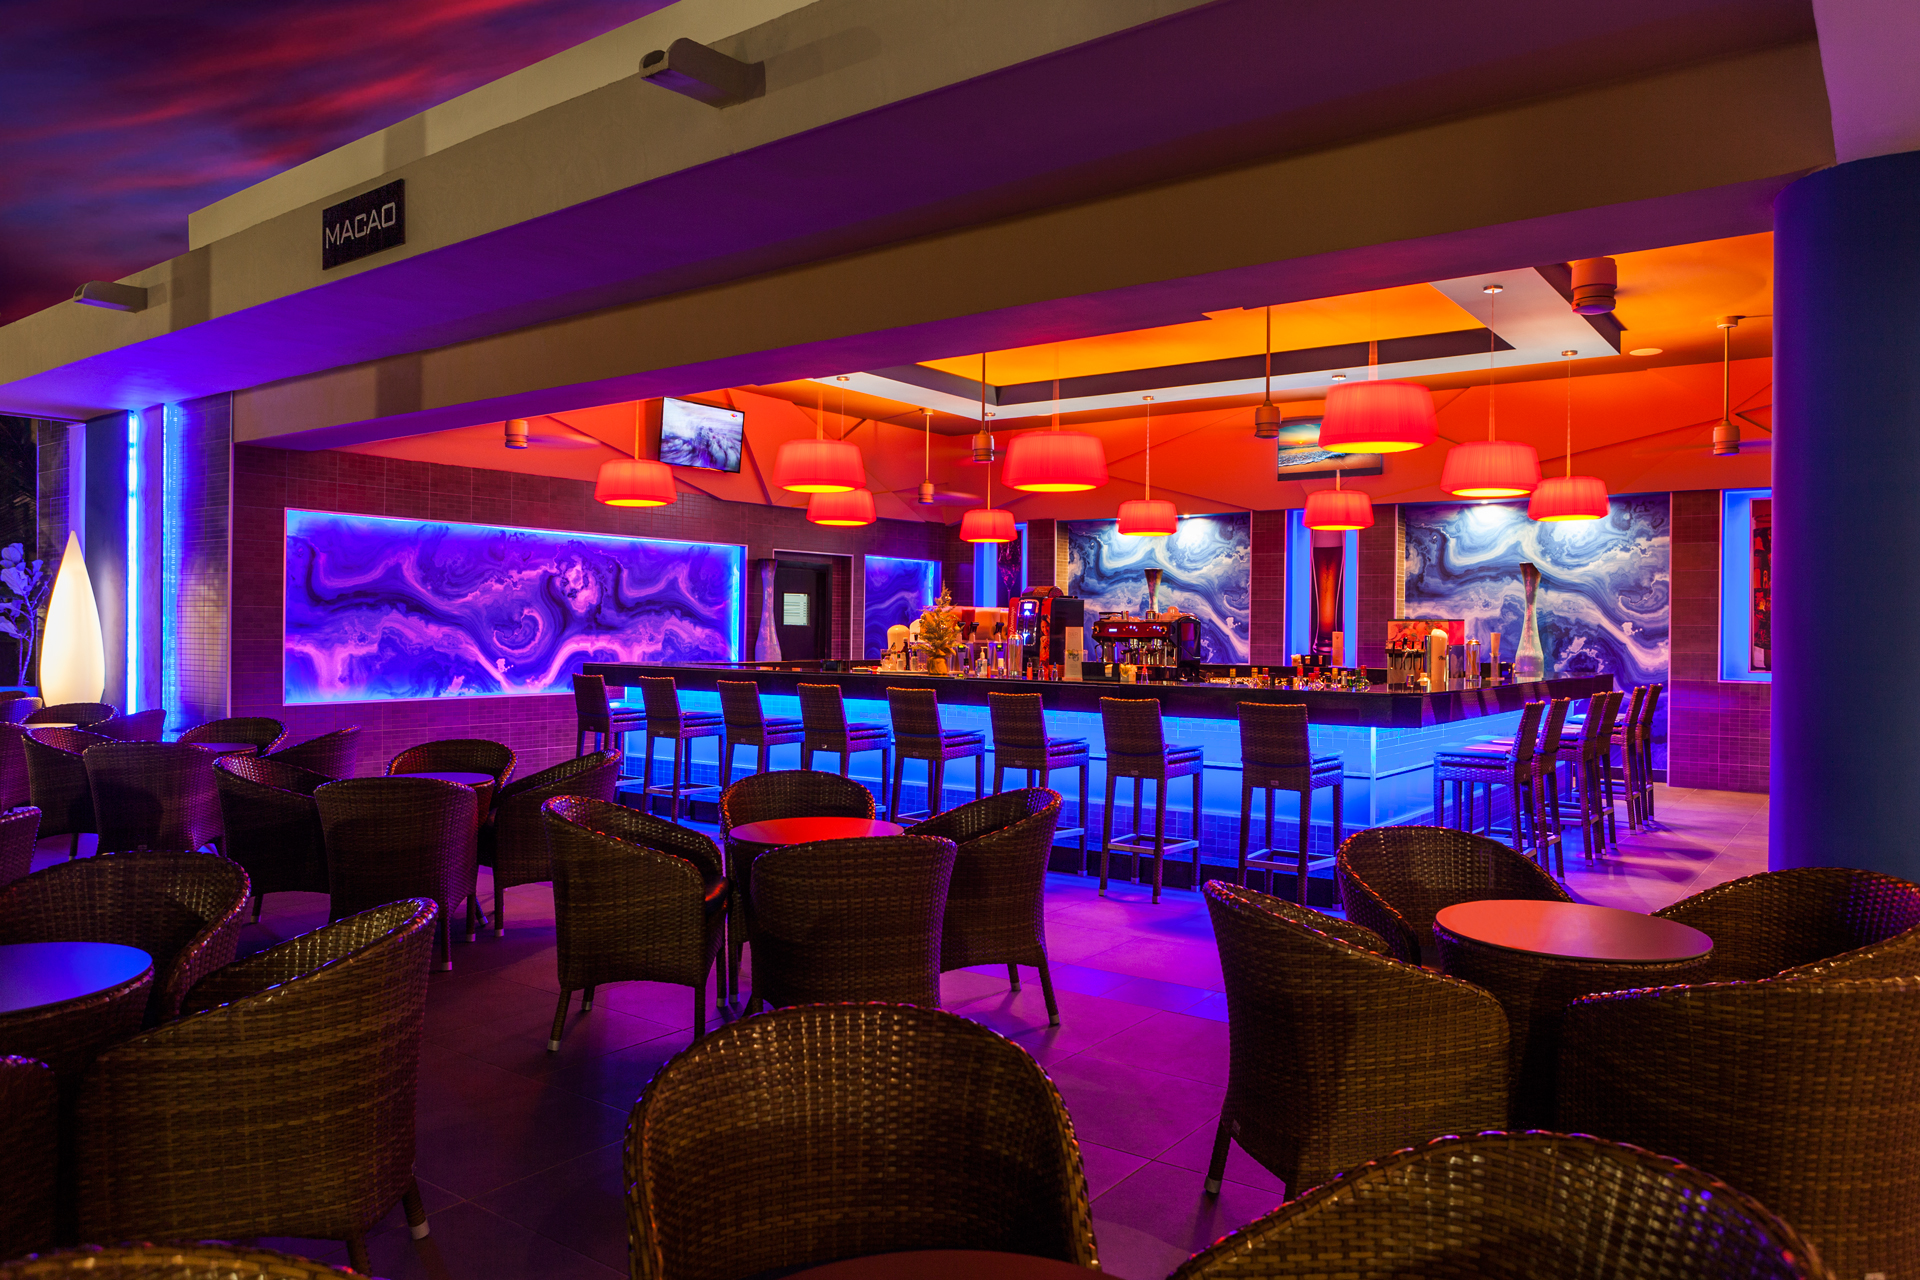 Macao Bar Riu Hotels & Resorts